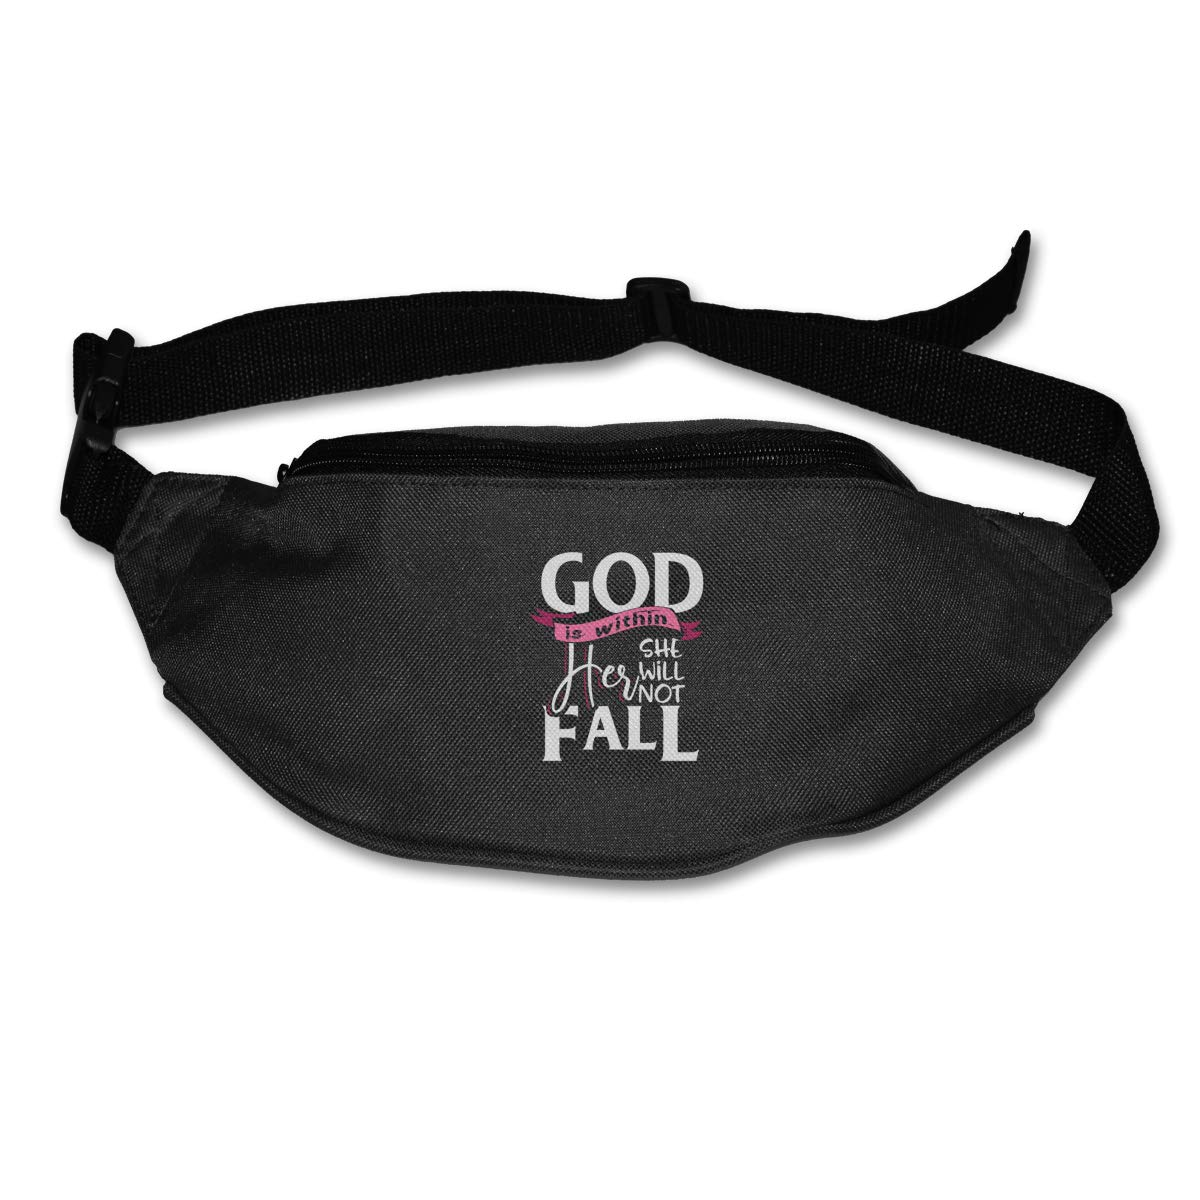 God Is Within Her She Will Not Fall Sport Waist Bag Fanny Pack Adjustable